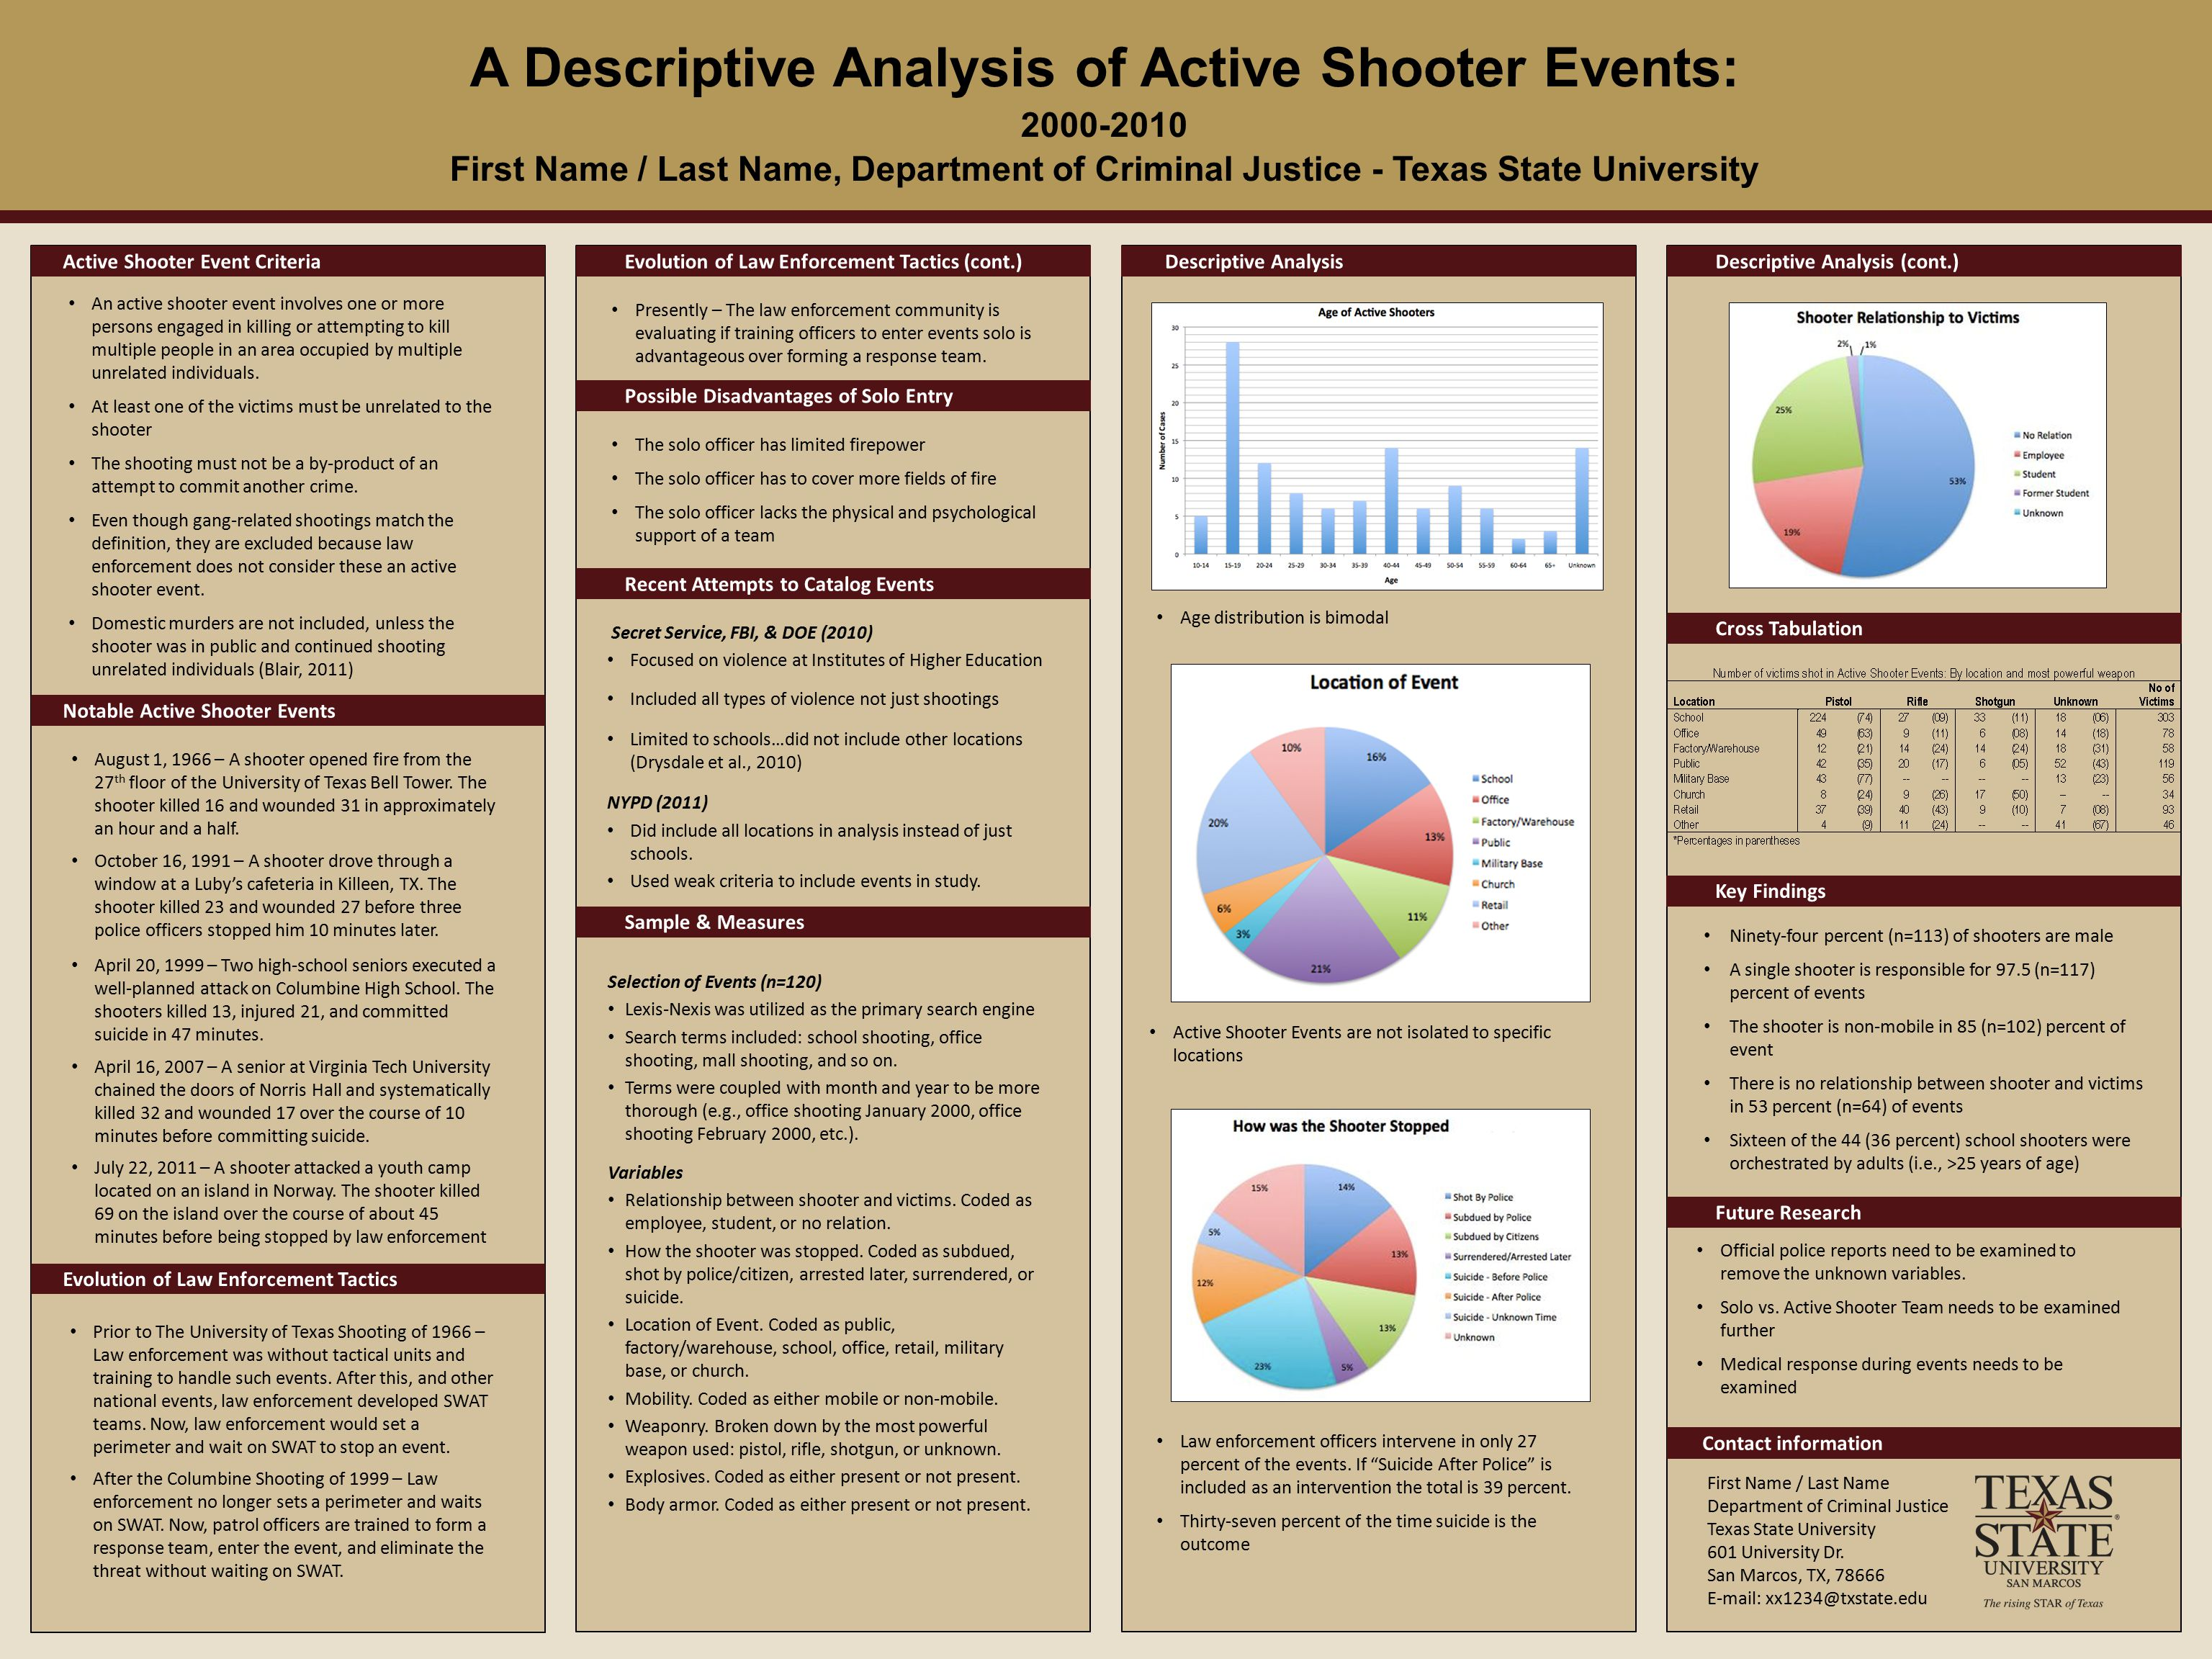 An active shooter event involves one or more persons engaged in killing or attempting to kill multiple people in an area occupied by multiple unrelated individuals.